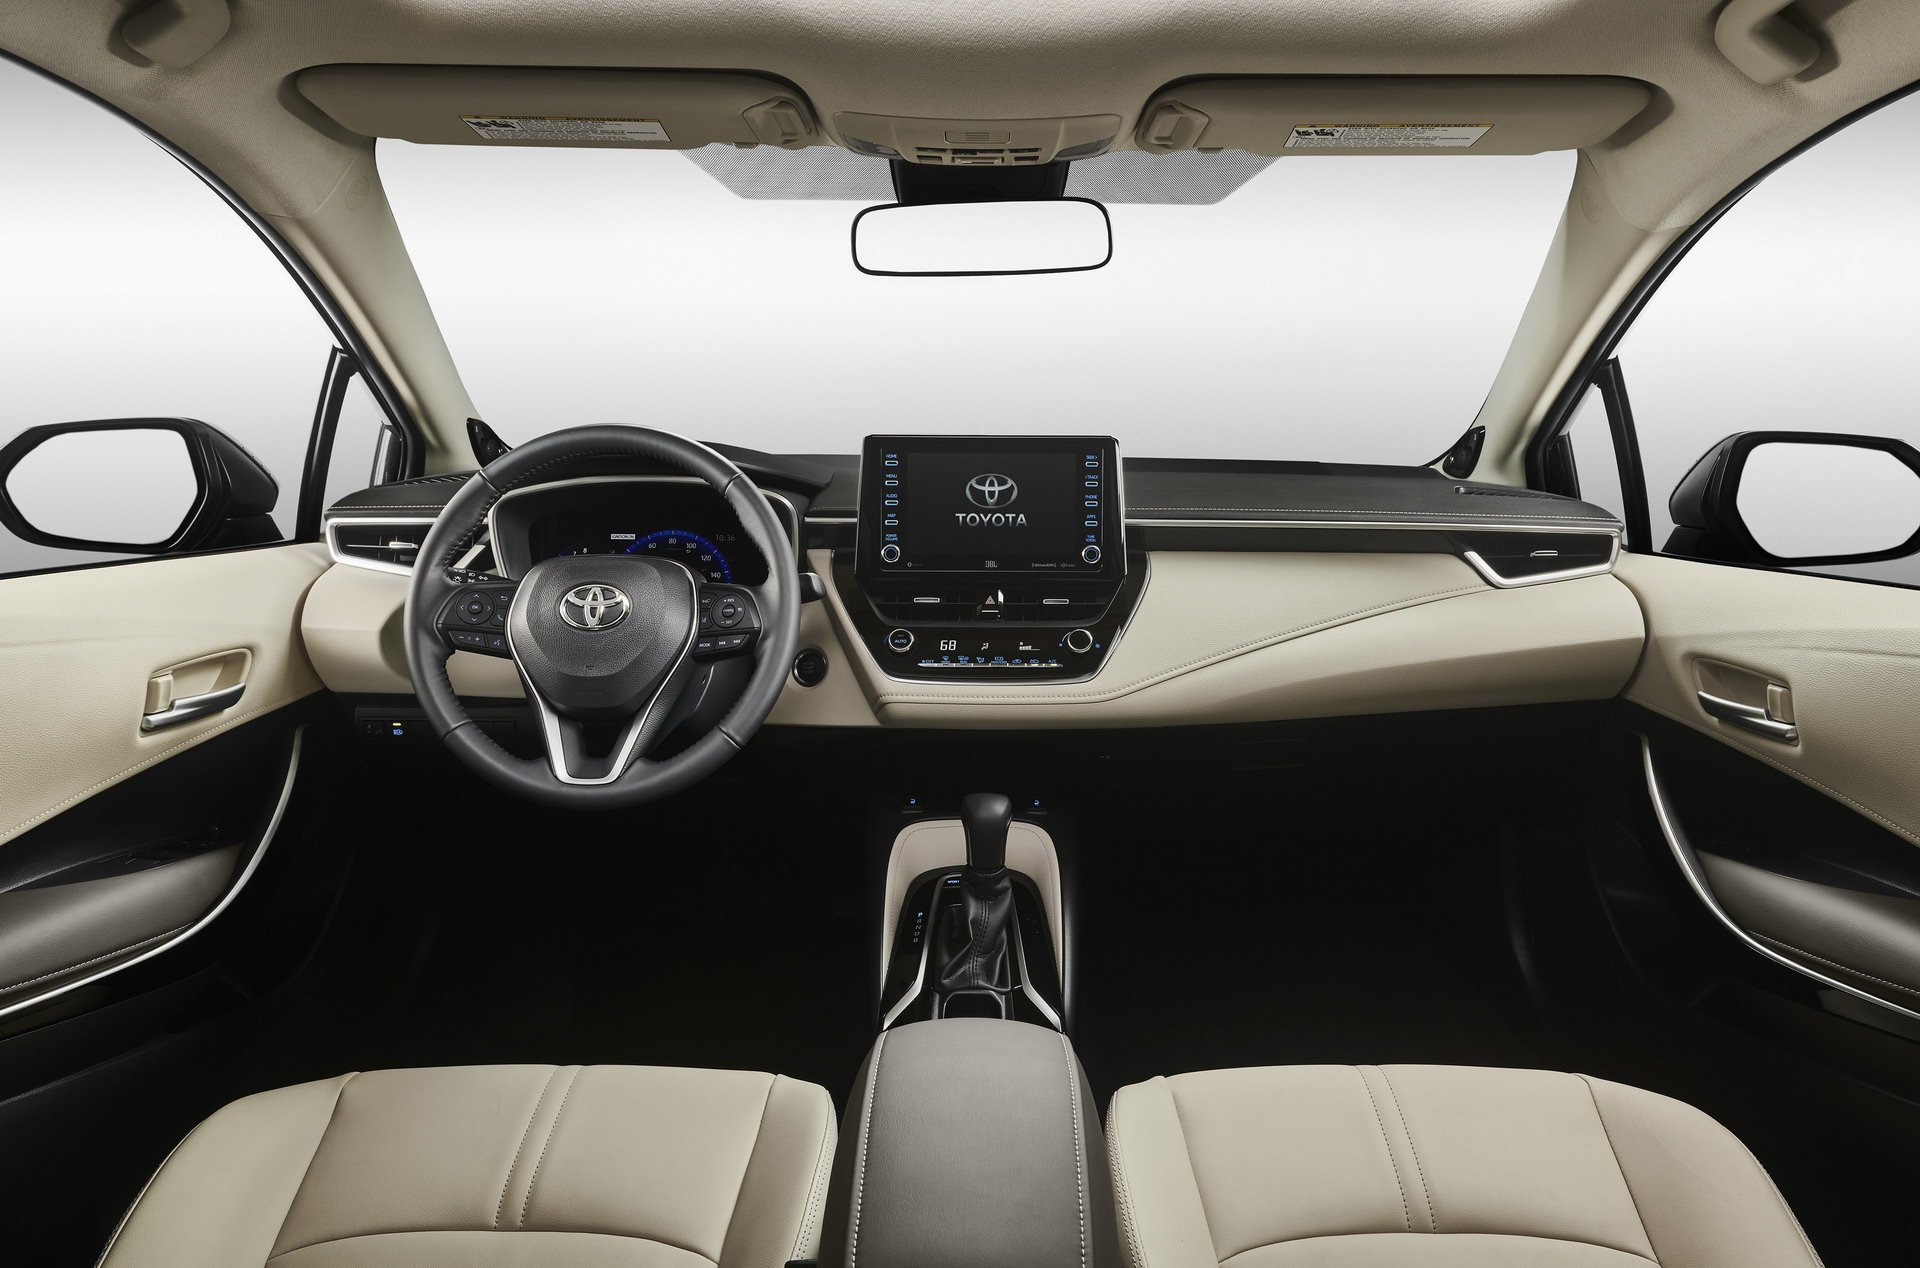 Toyota Camry 2018 Interior >> Photo Comparison: 2020 Toyota Corolla Sedan vs. 2014 Toyota Corolla Sedan - autoevolution